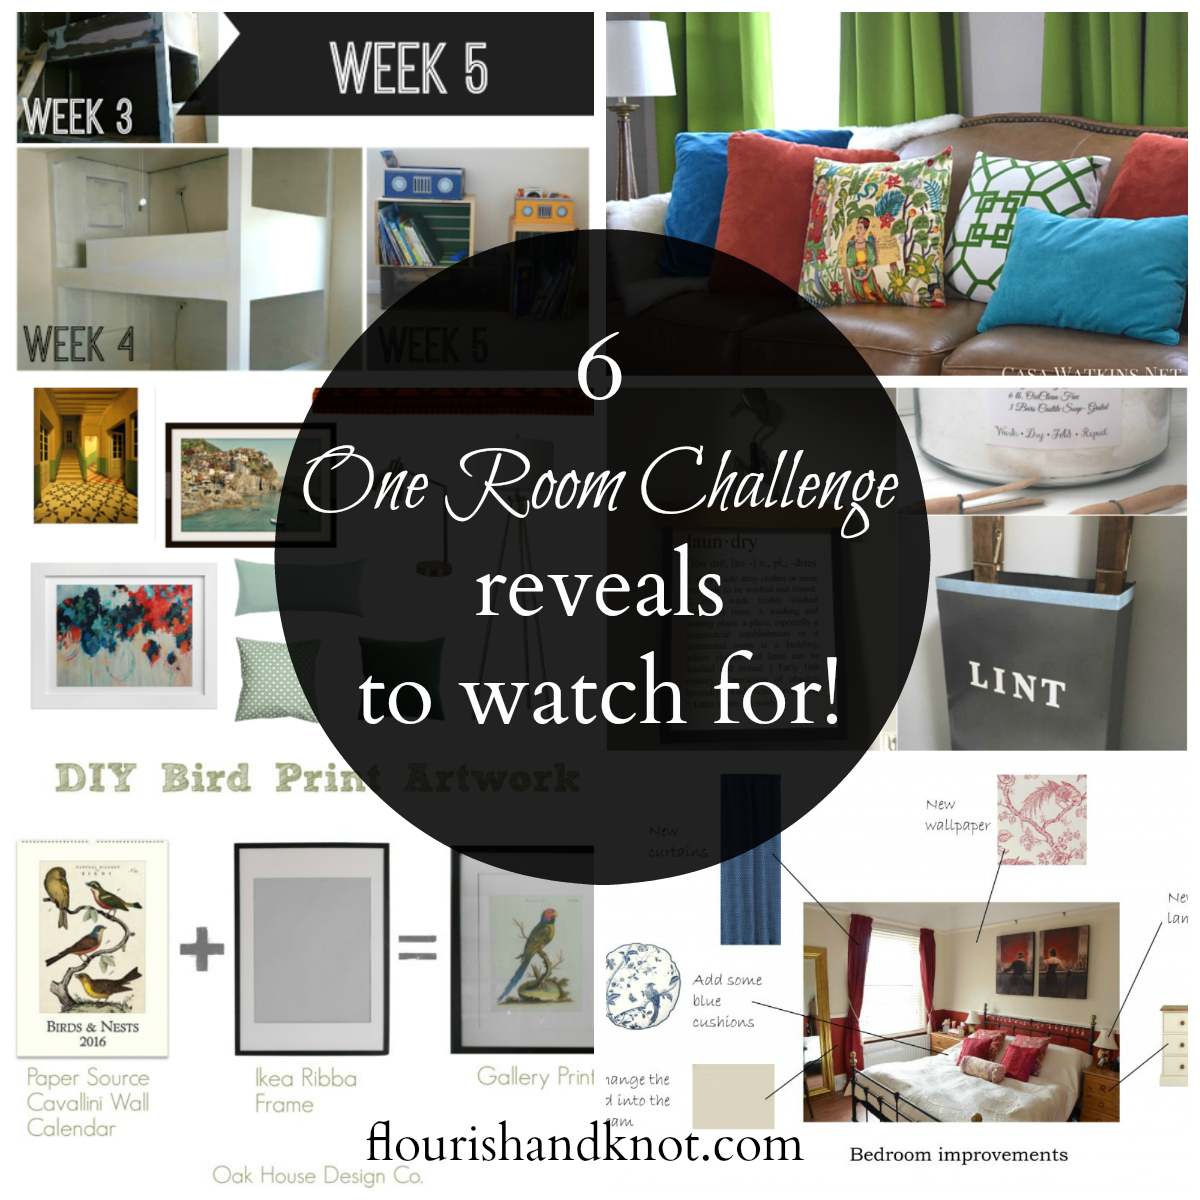 6 One Room Challenge REVEALS to Watch For!